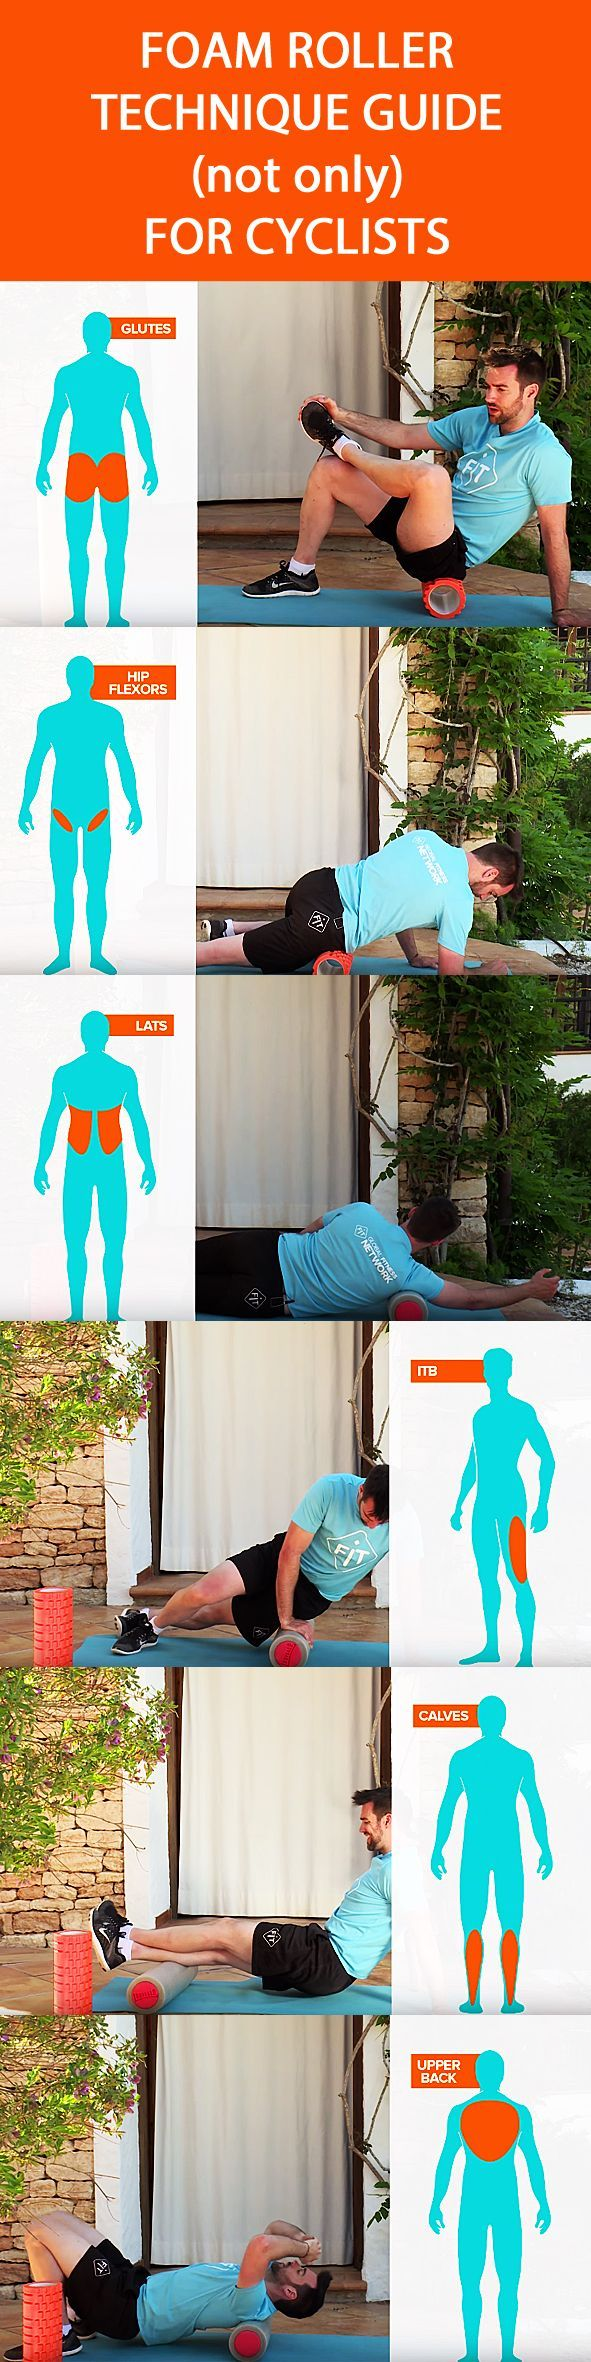 FOAM ROLLER technique guide for cyclists: aimed at cyclists in particular but…